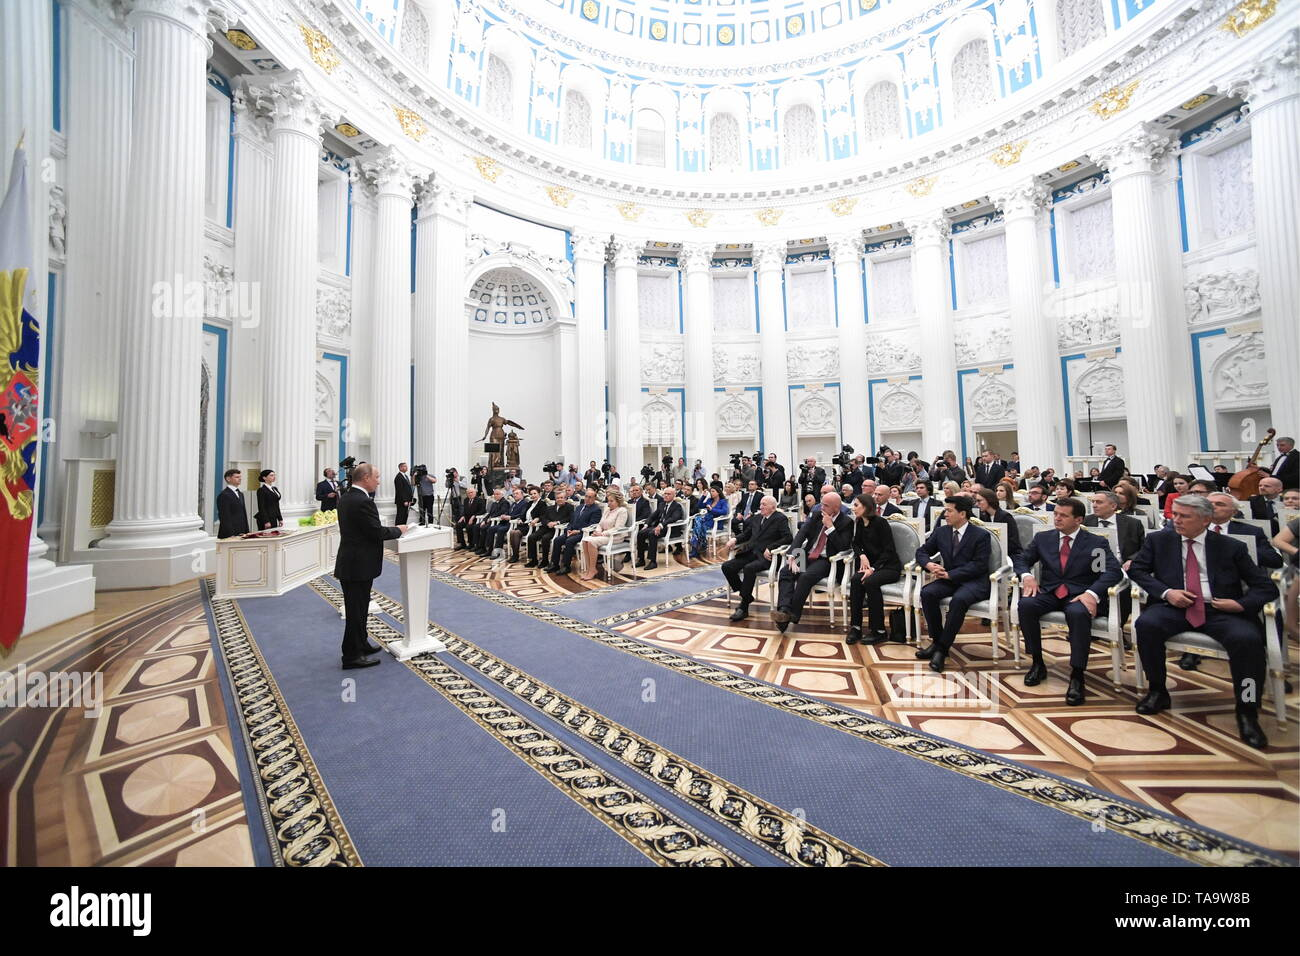 Moscow, Russia. 23rd May, 2019. MOSCOW, RUSSIA - MAY 23, 2019: Russia's President Vladimir Putin (R) attends a ceremony to present state decorations at the Moscow Kremlin. Alexei Nikolsky/Russian Presidential Press and Information Office/TASS Credit: ITAR-TASS News Agency/Alamy Live News - Stock Image